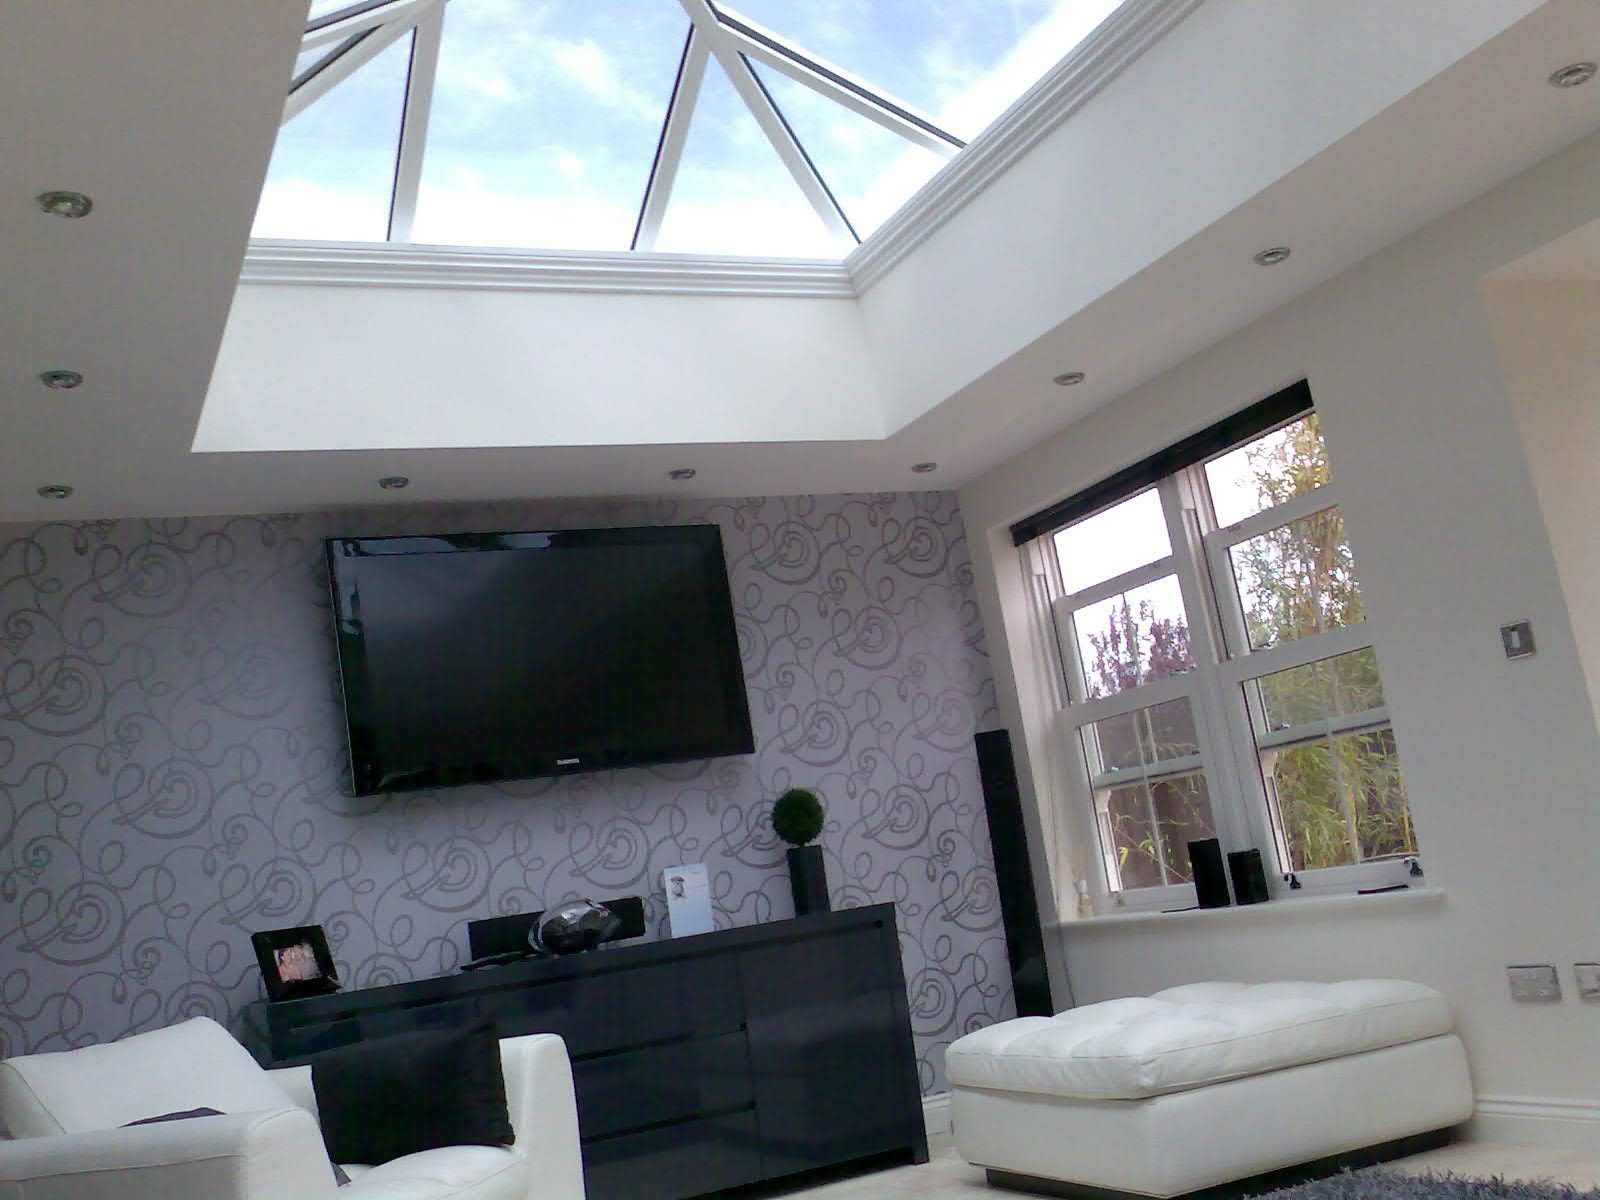 Interior of ultraframe orangery installed by acps for Orangery interior design ideas